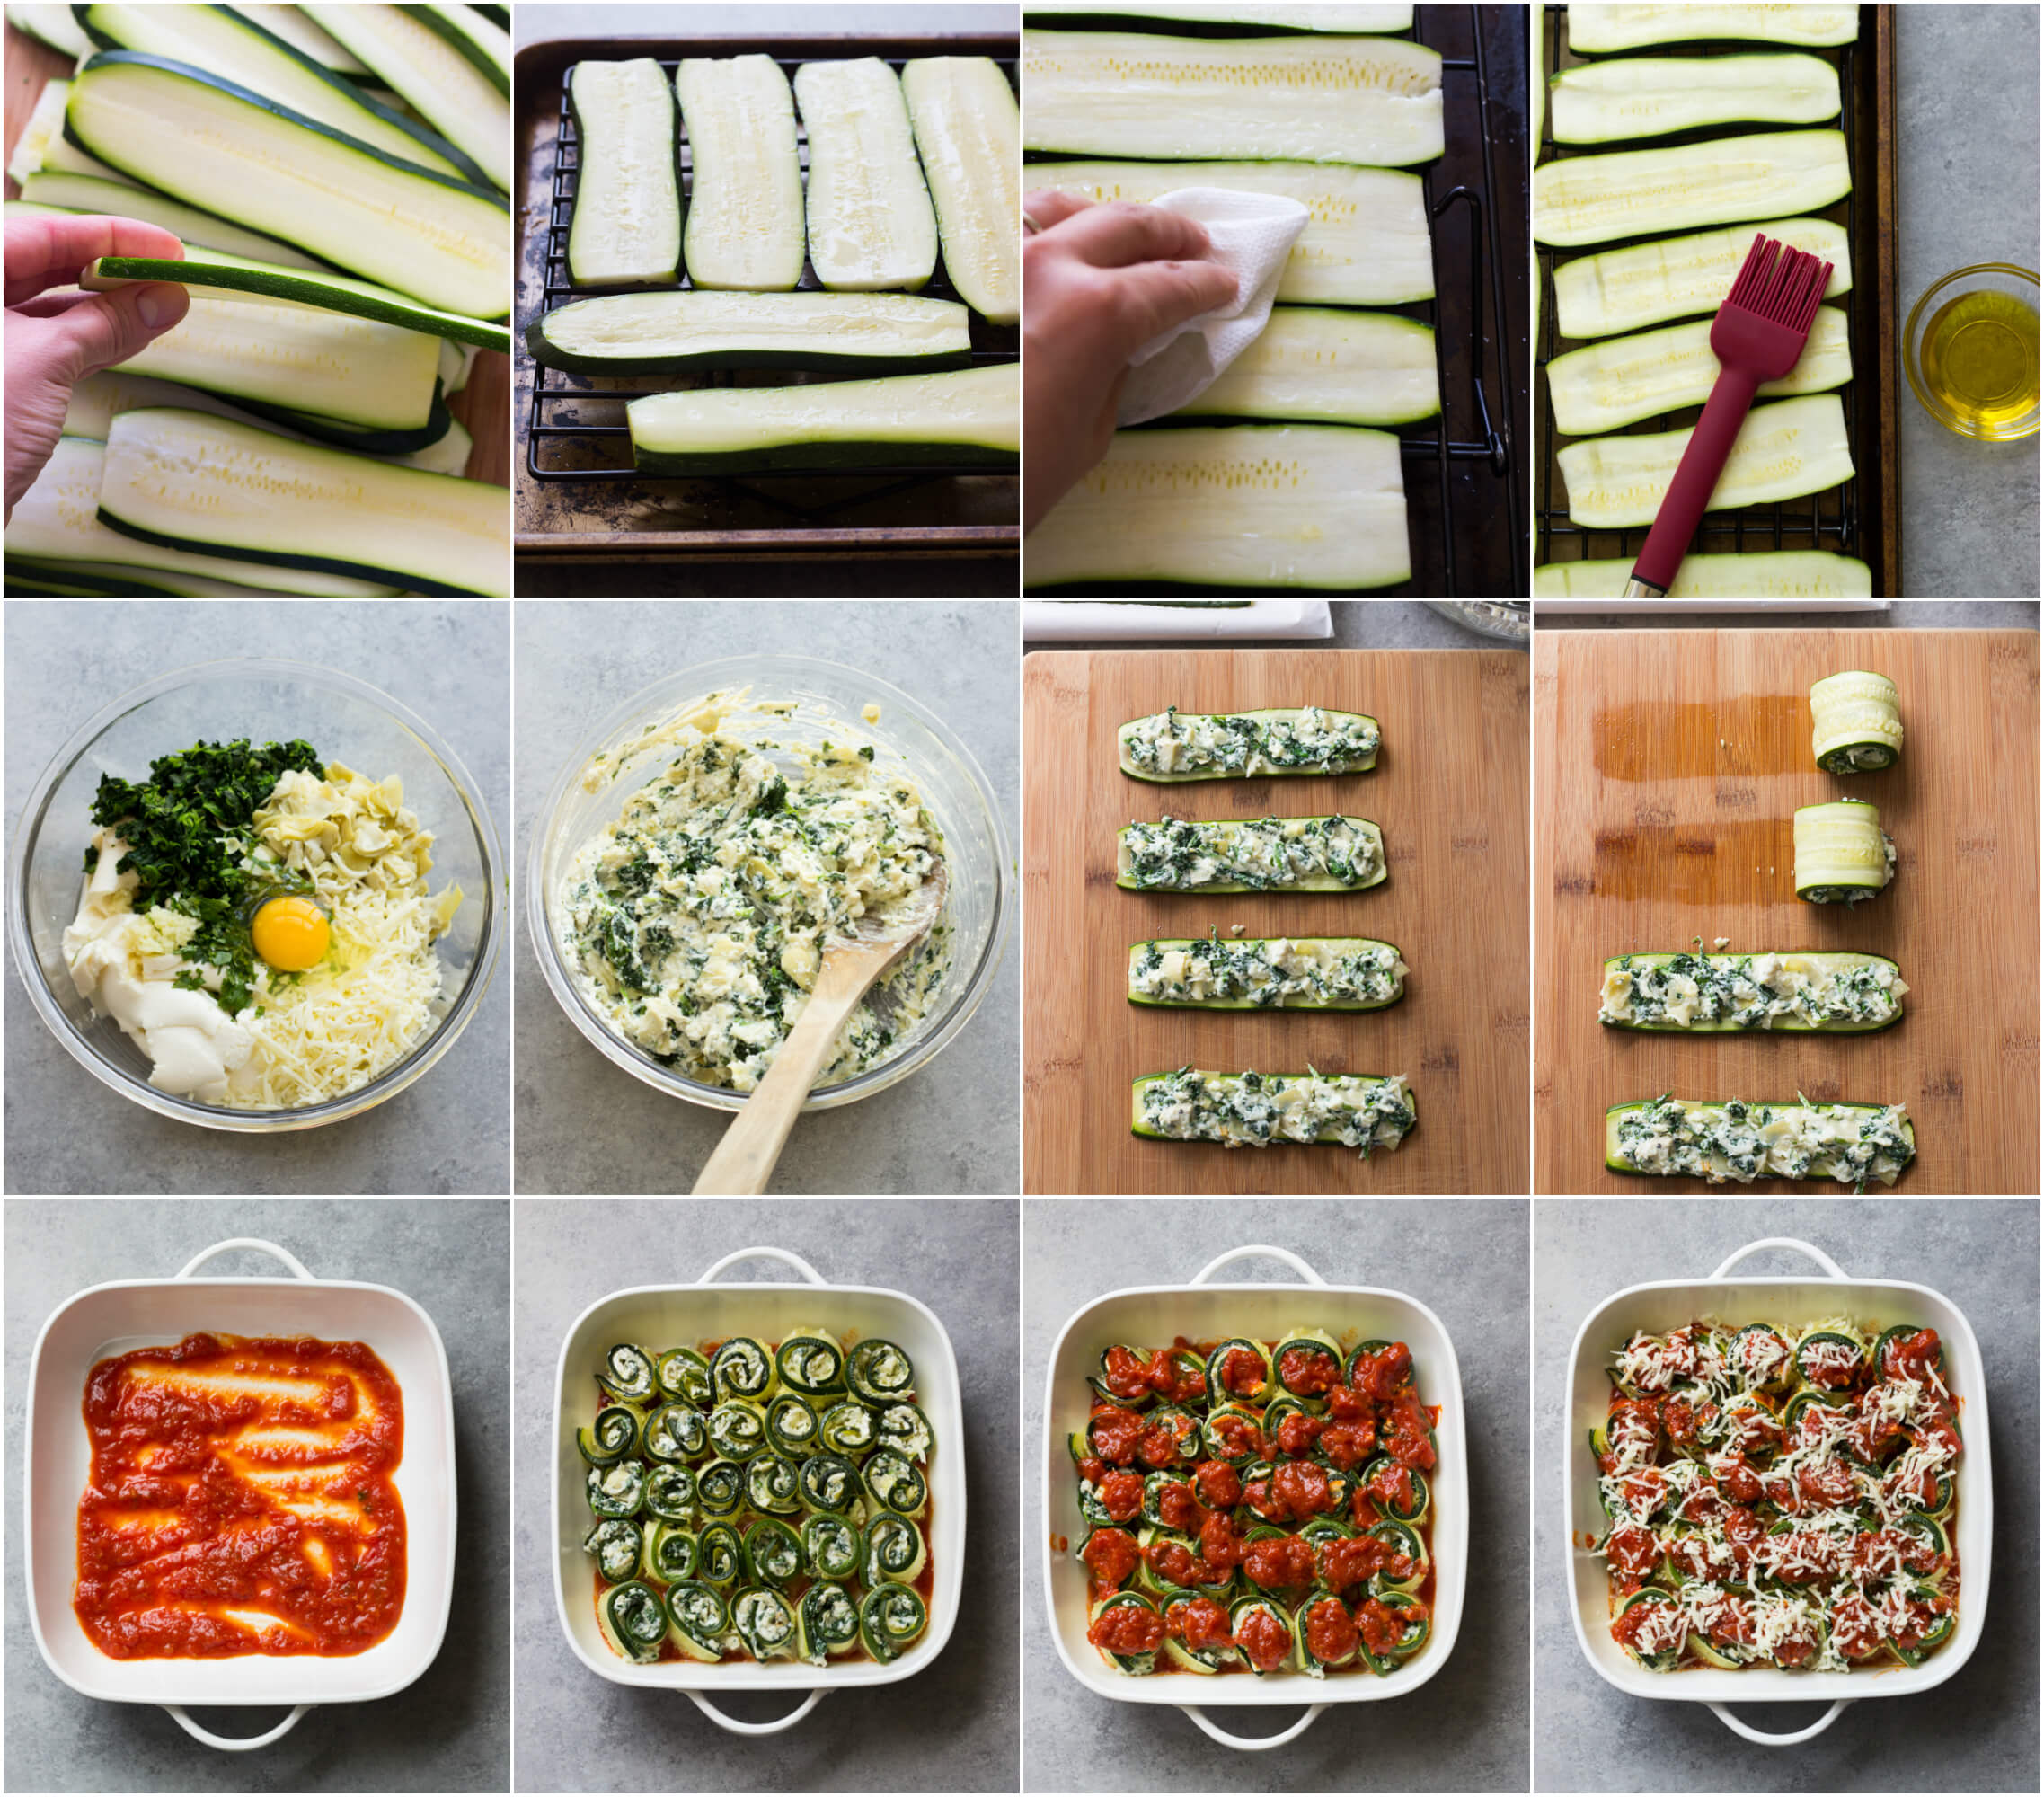 Zucchini Lasagna Roll Ups with Spinach and Artichokes - low carb, gluten free, and kid friendly! | littlebroken.com @littlebroken